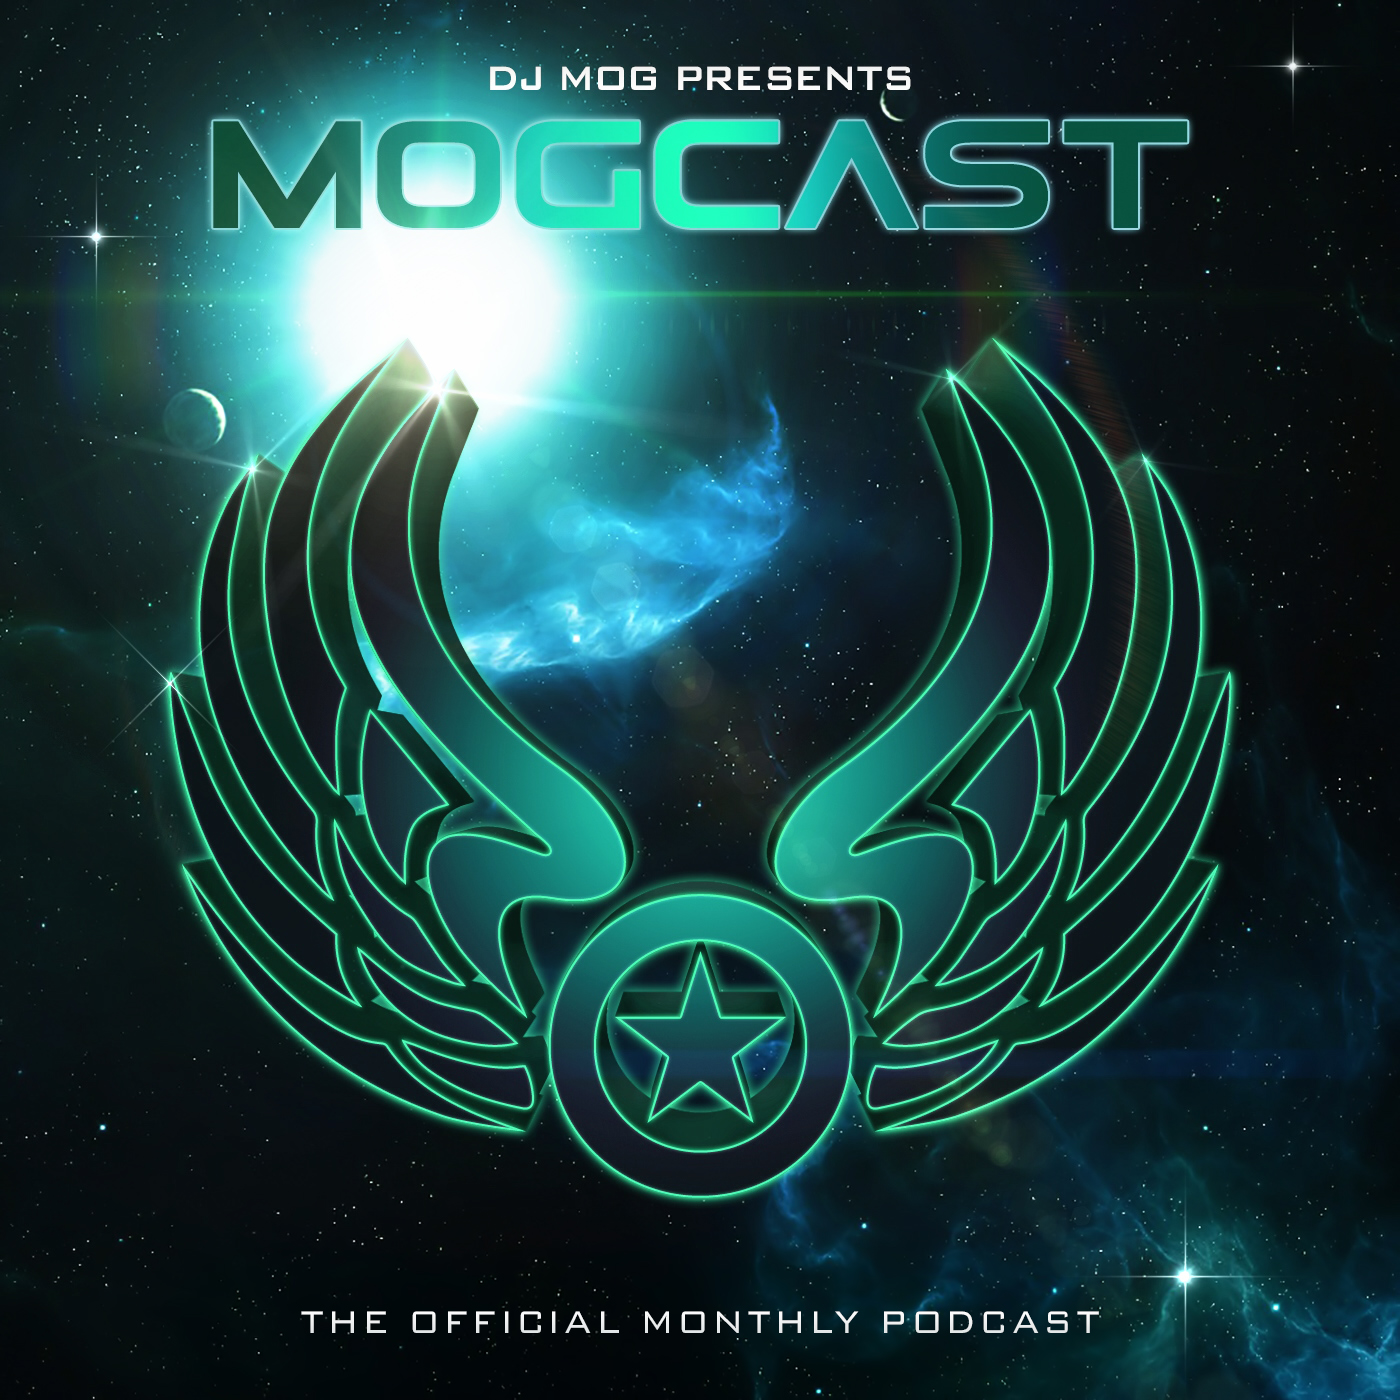 DJ Mog Presents Mogcast